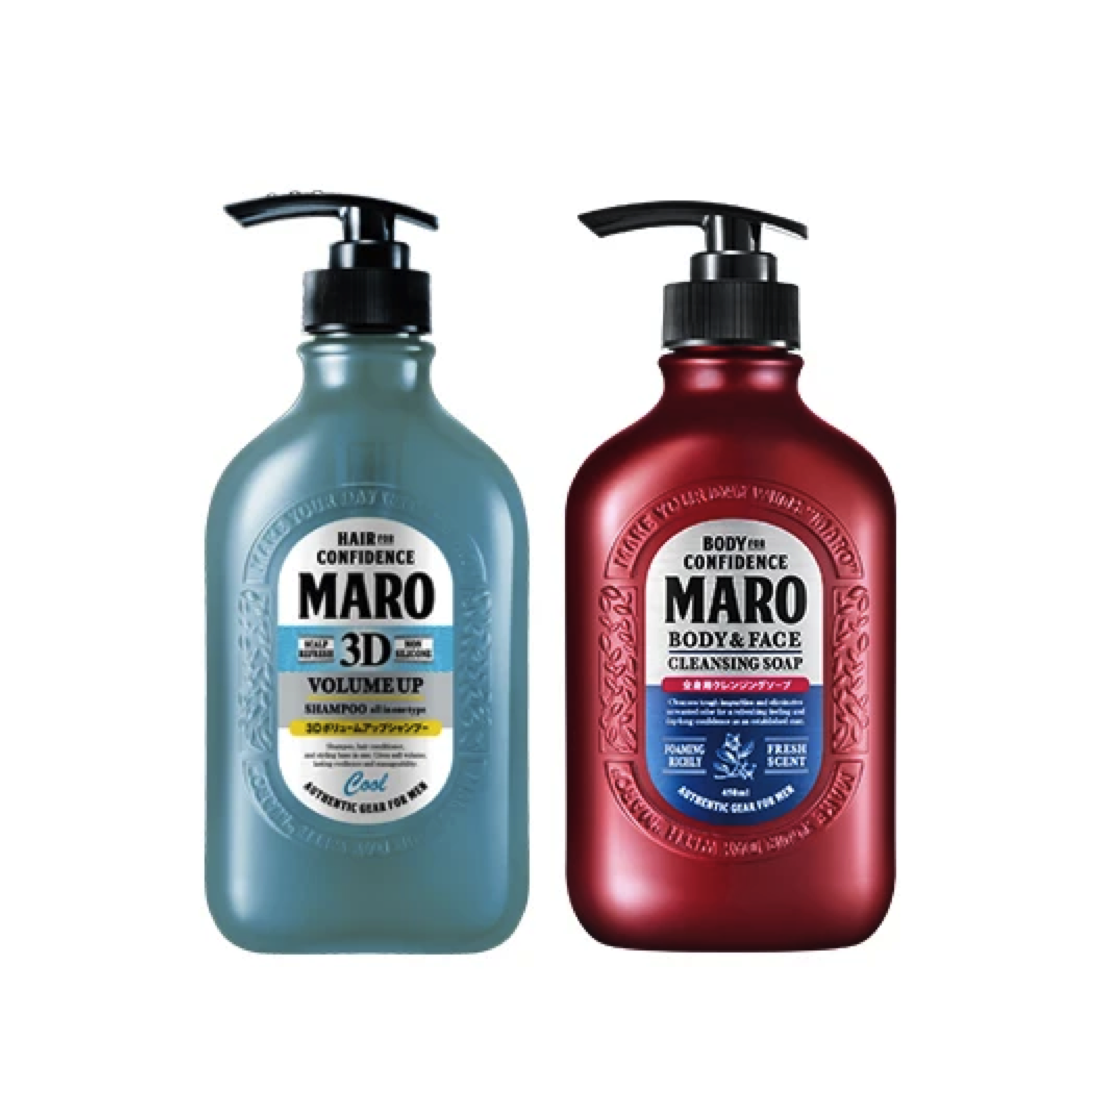 [Combo Set] Maro 3D Volume Up Shampoo Cool 400ml + Maro Body and Face Cleansing Soap 450ml - Original from Japan (READY STOCK)